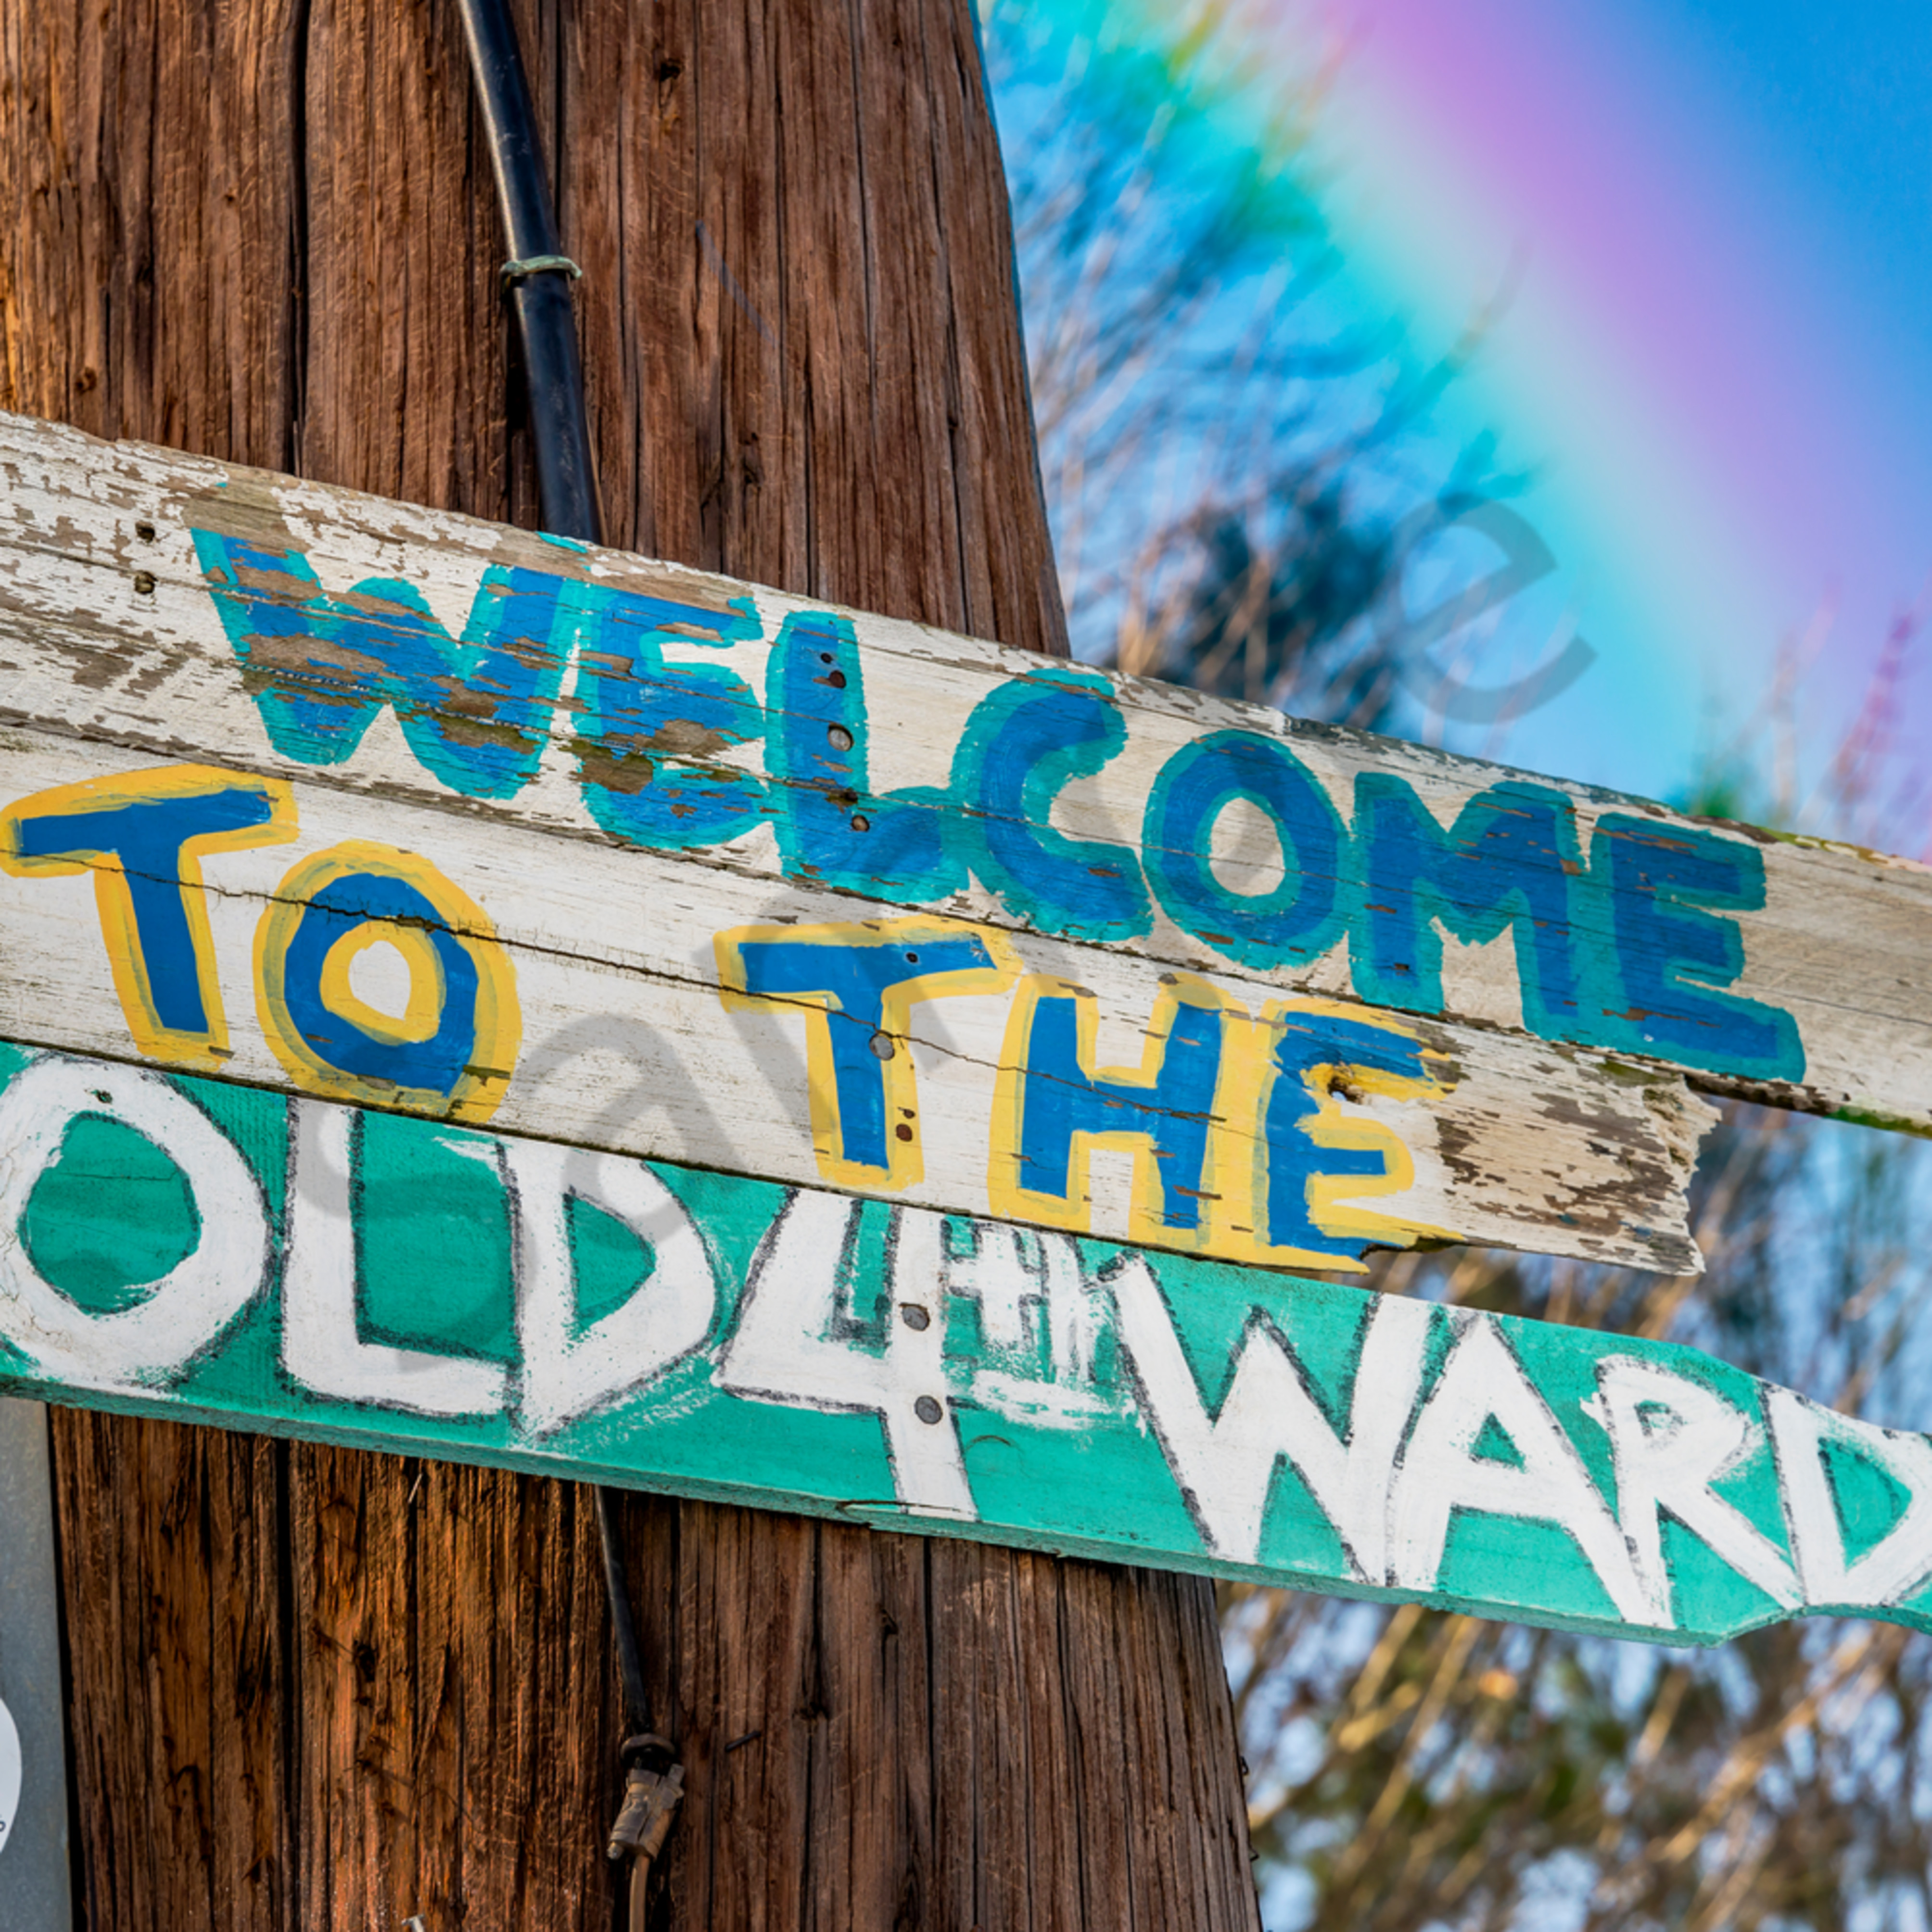 Welcome to the old fourth ward gyfxyz